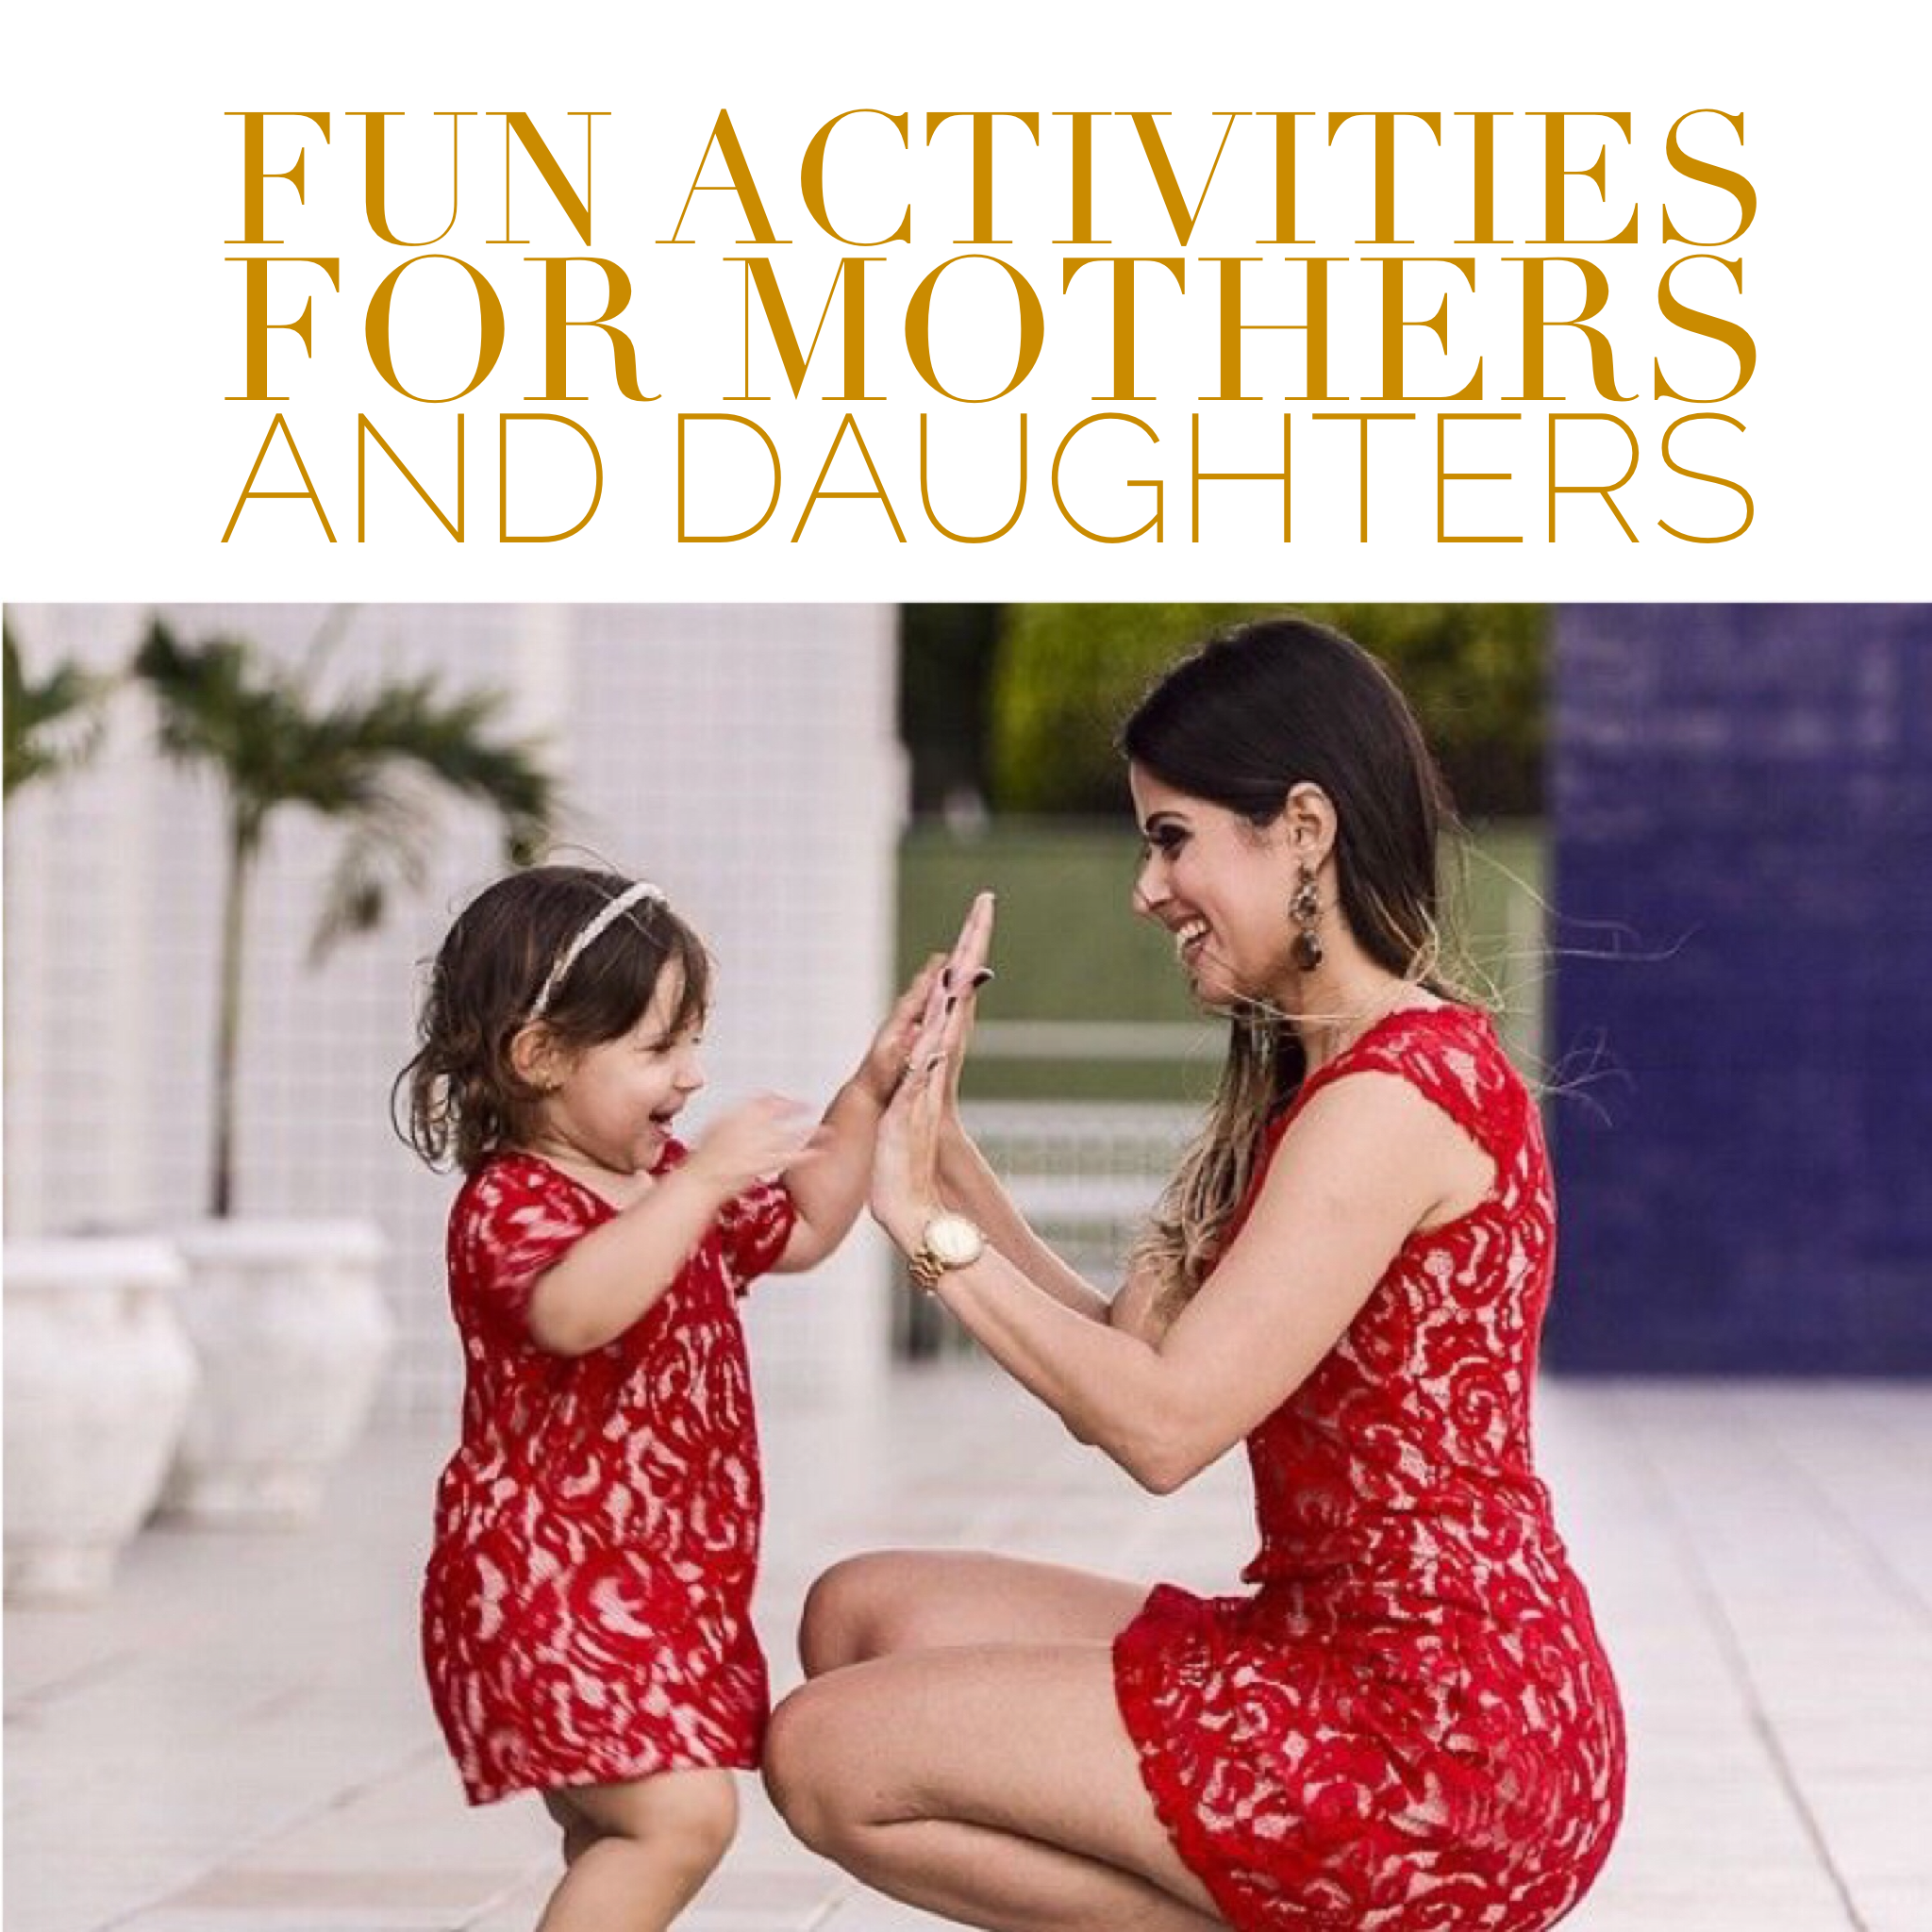 Fun activities for mothers and daughters